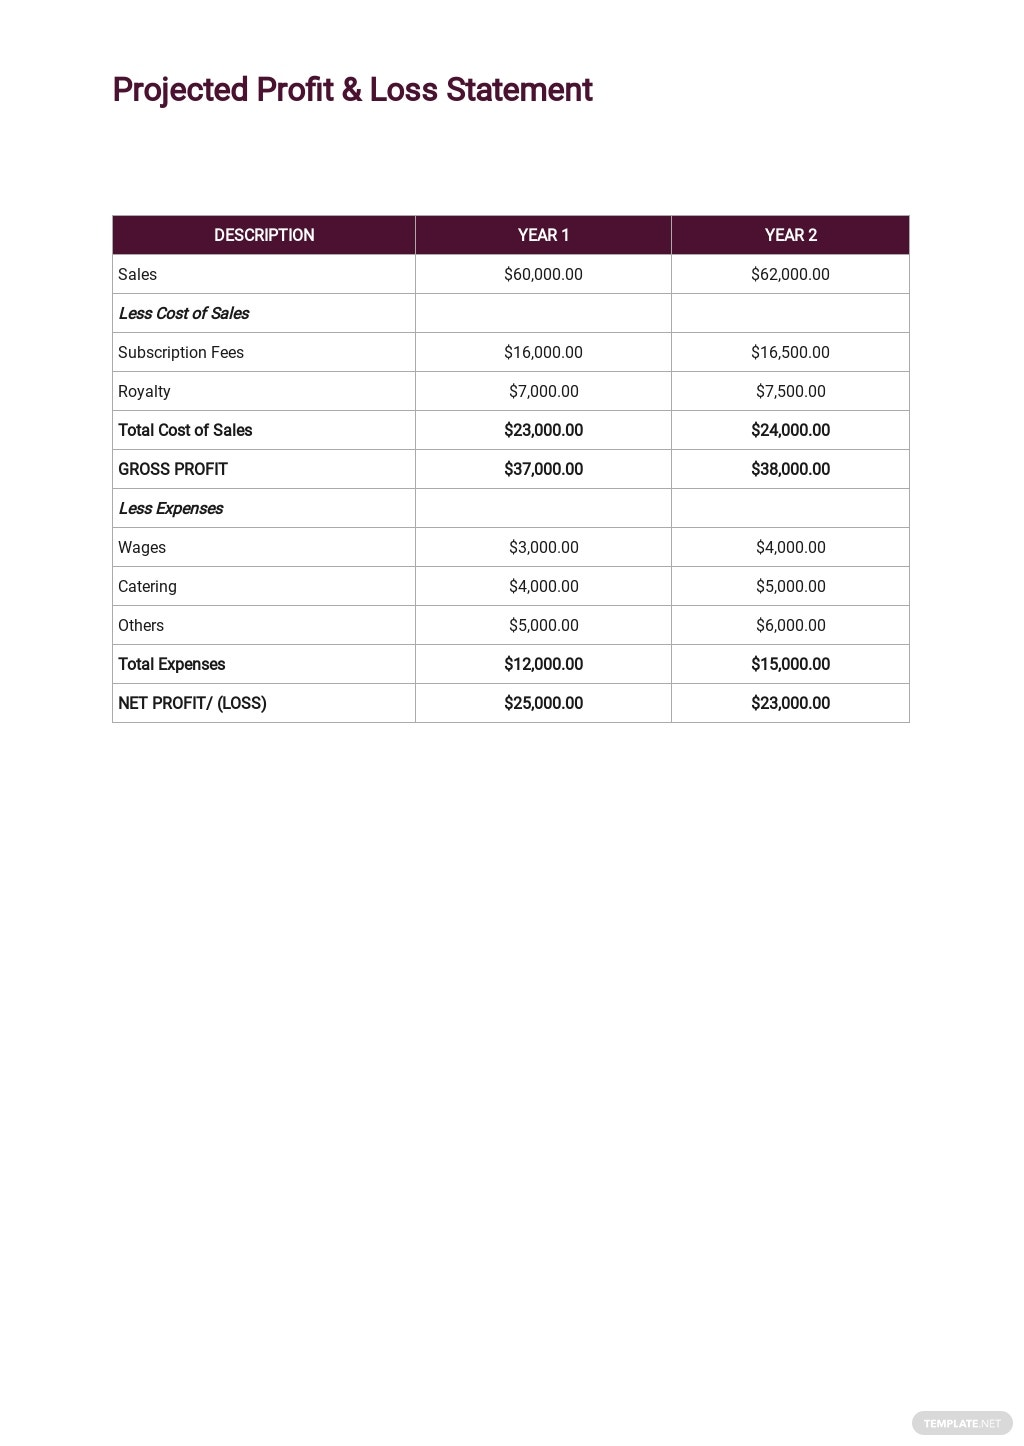 Production Company Business Plan Template 5.jpe